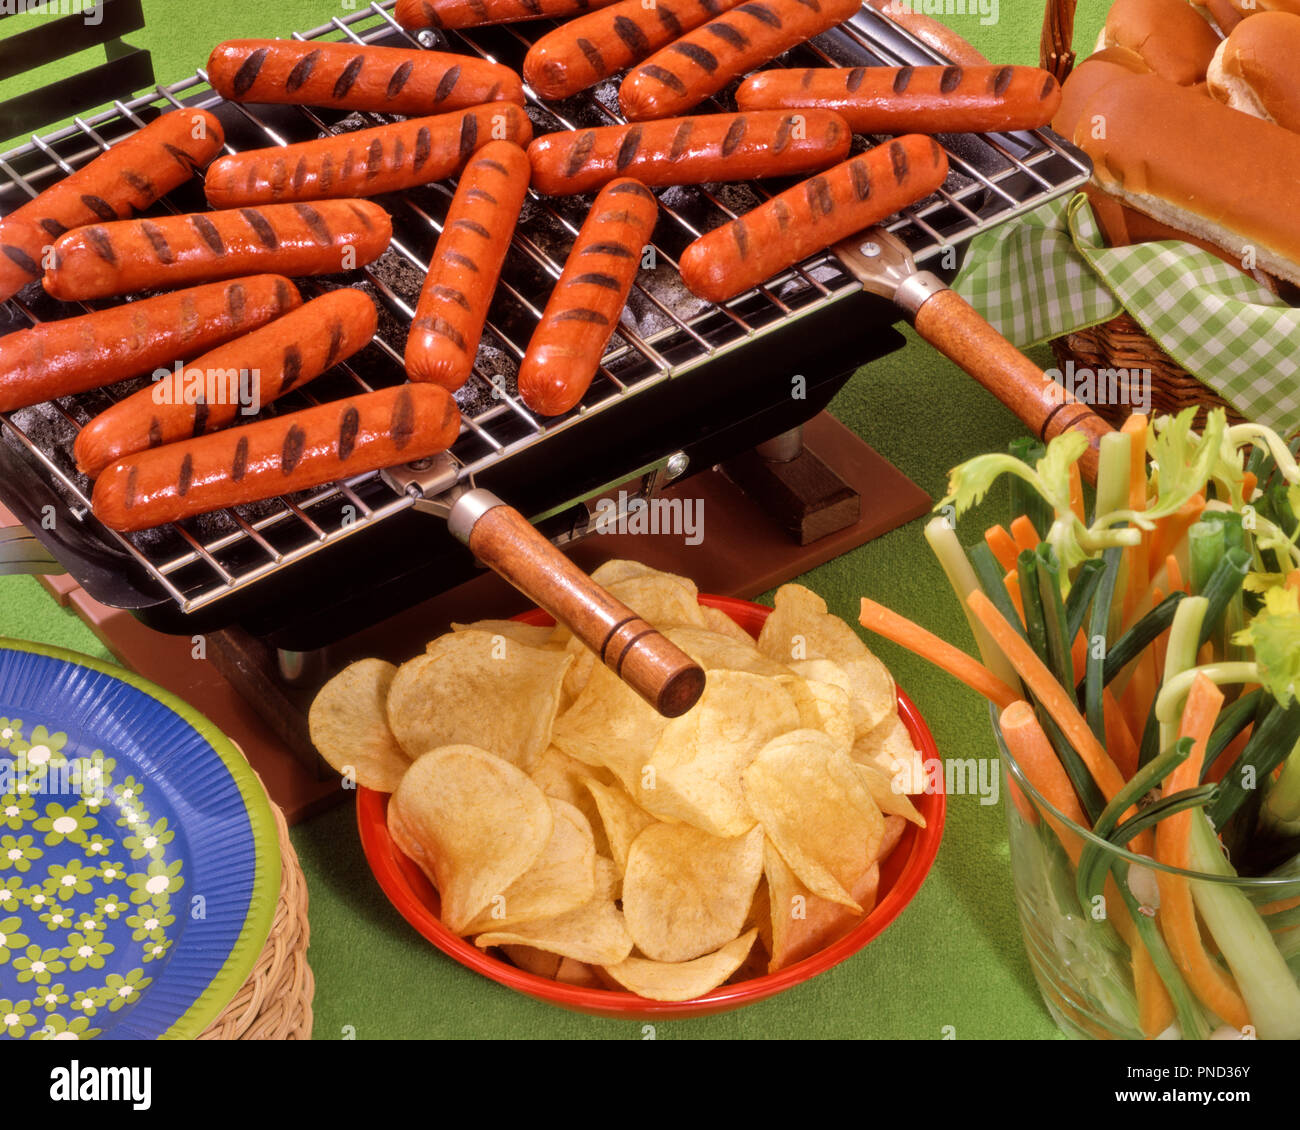 1970s 1980s GRILLED HOT DOGS ON HIBACHI CHARCOAL GRILL ALONG WITH BUNS POTATO CHIPS SLICED CELERY STALKS AND CARROT STICKS - kf24067 FRT001 HARS POTATO CHIPS - Stock Image